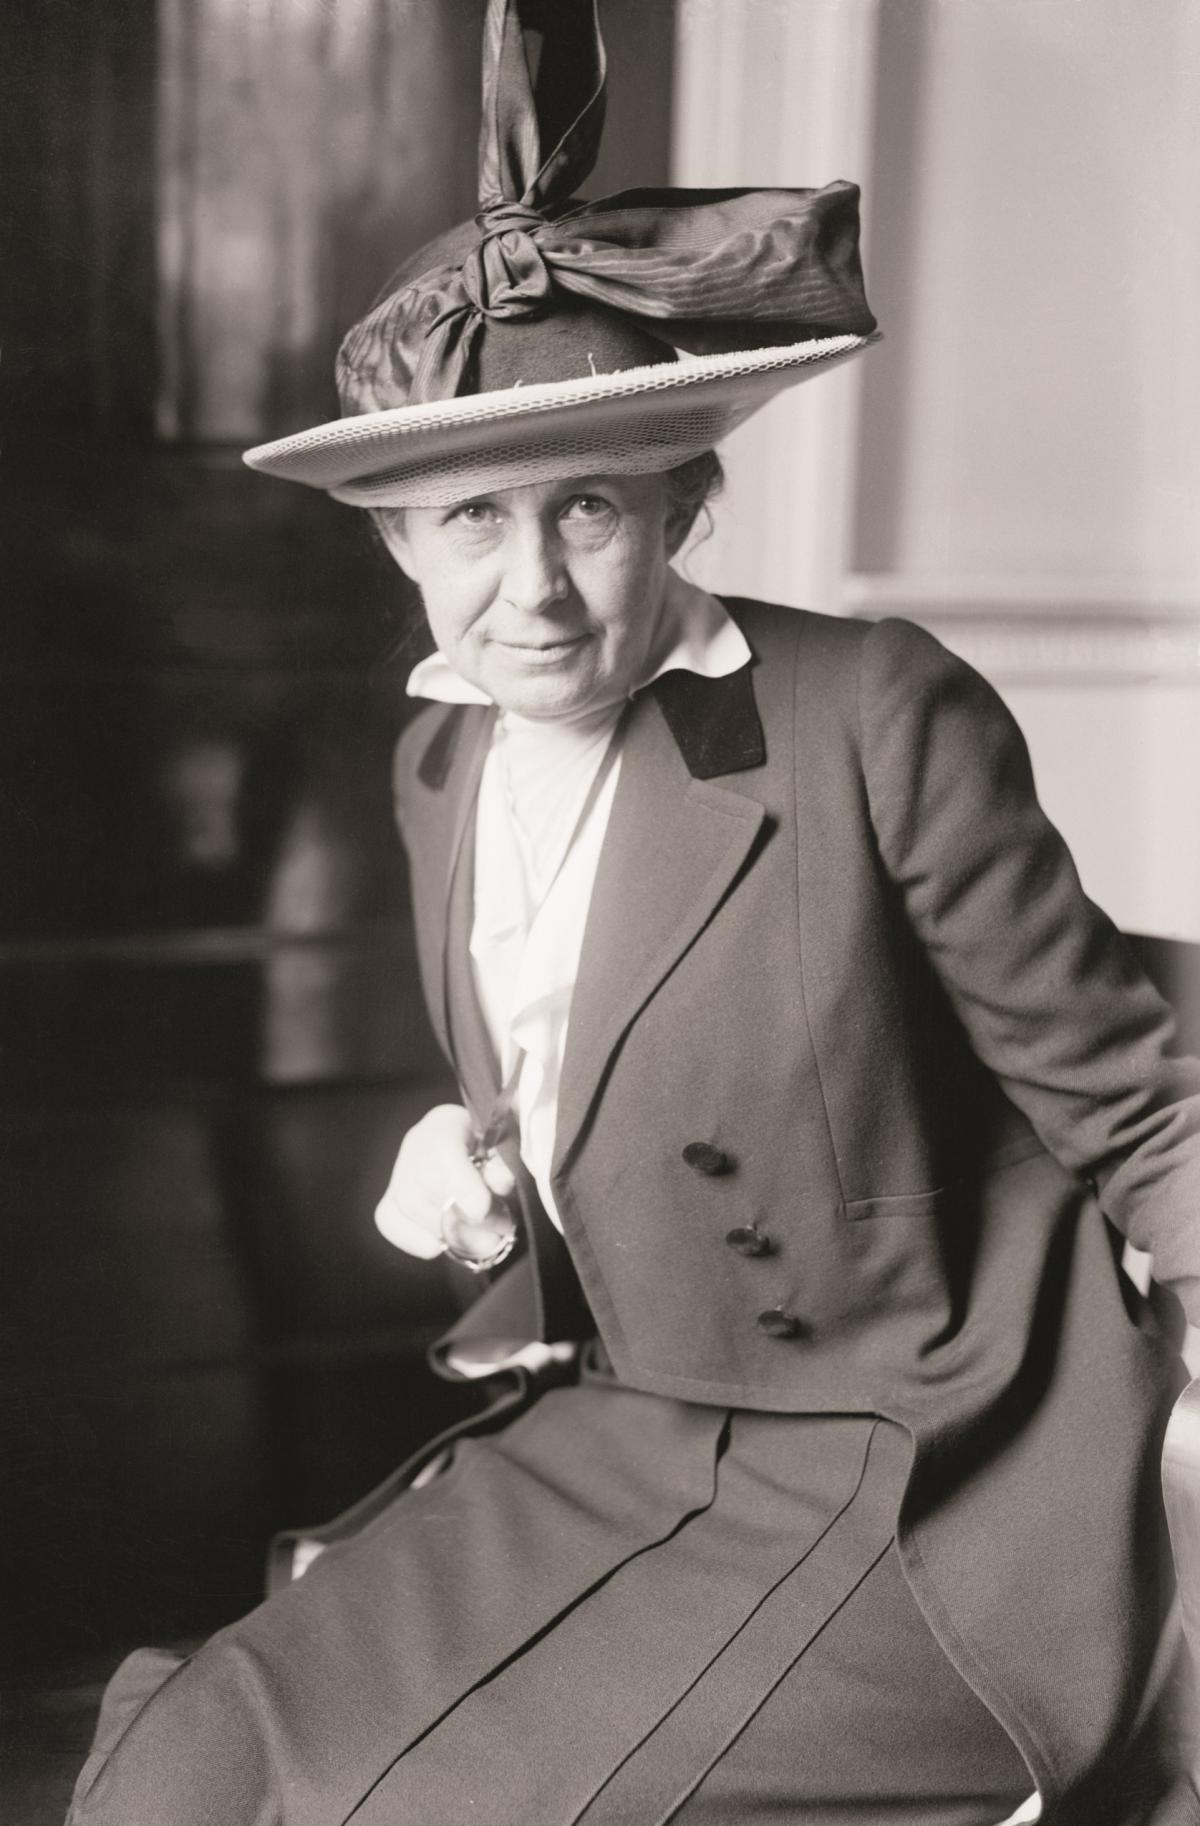 Black and white photograph of a woman in a hat